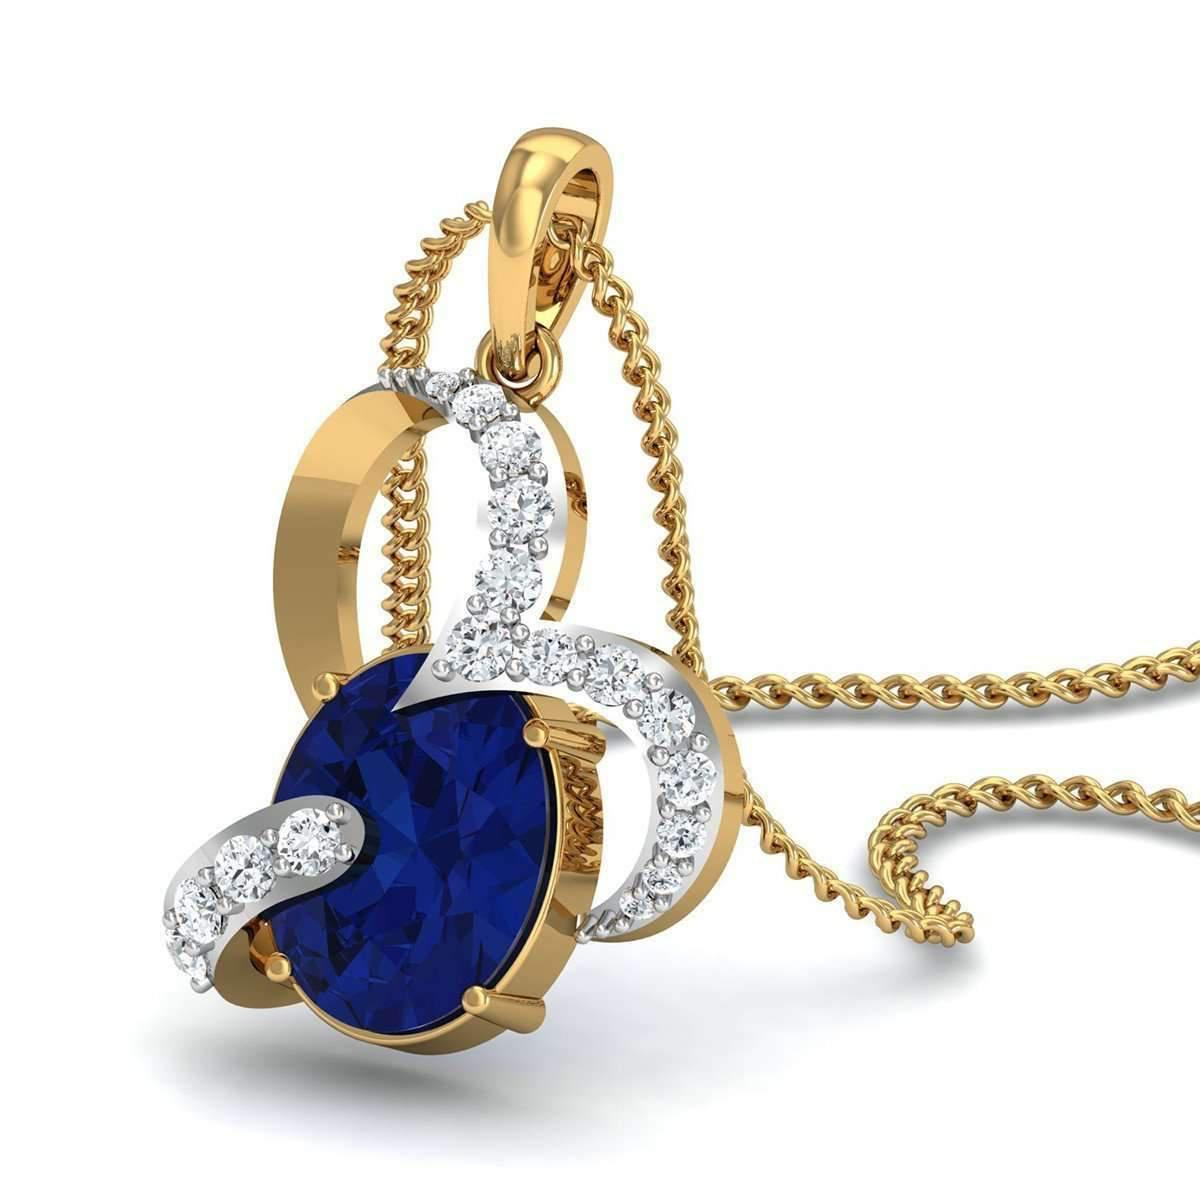 Diamoire Jewels Oval Shape Sapphire and Diamond Pendant in 10kt Yellow Gold 2dlrI4DUE